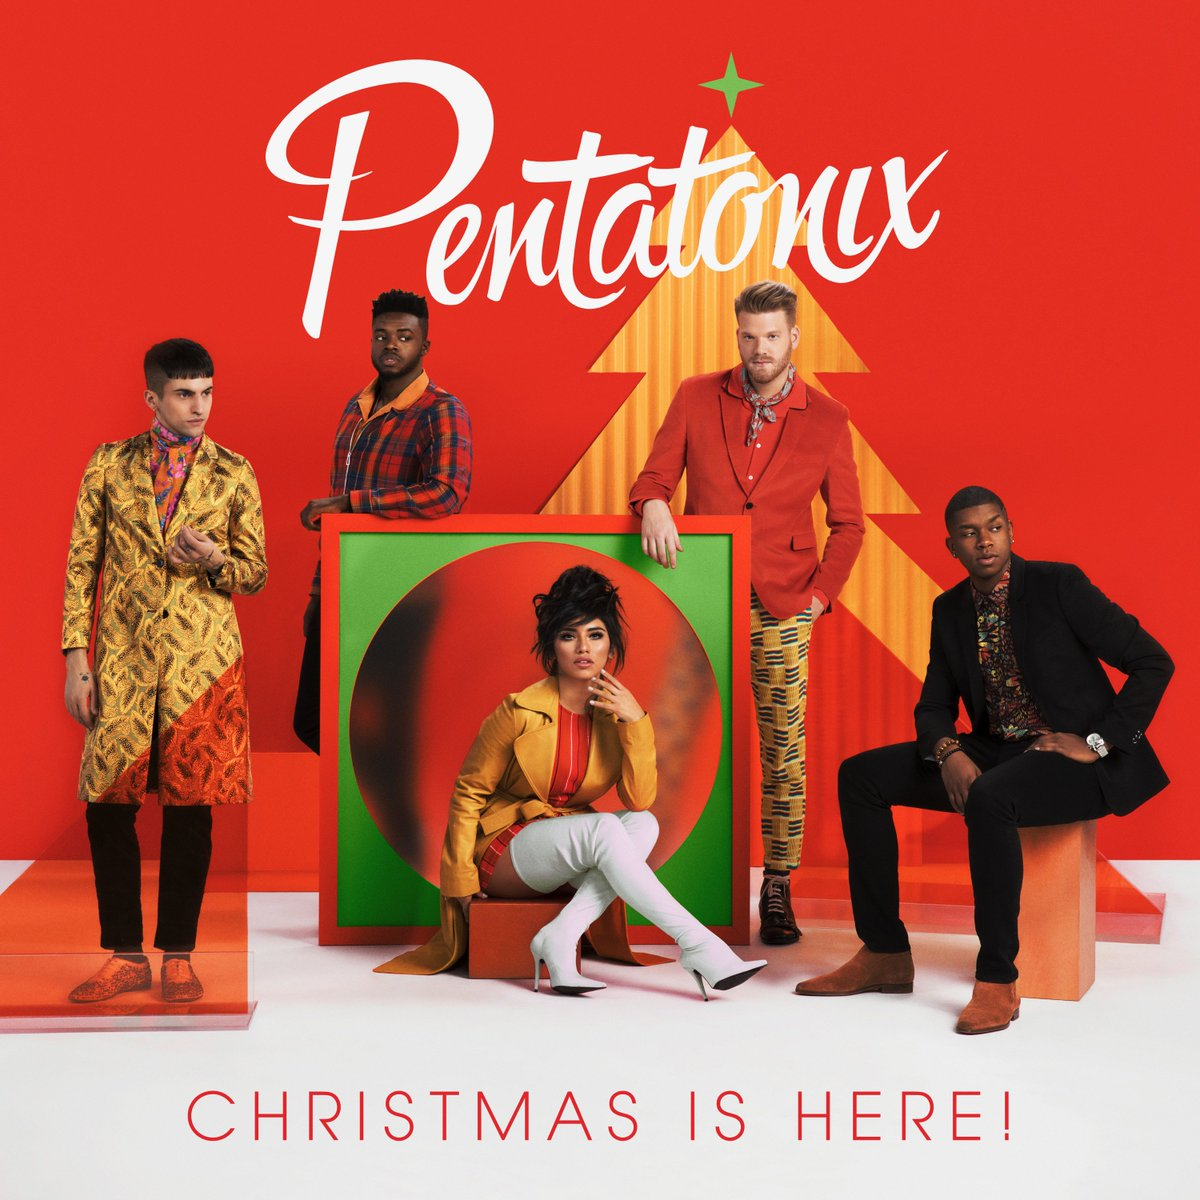 pentatonix on twitter it will feature new ptx christmas covers